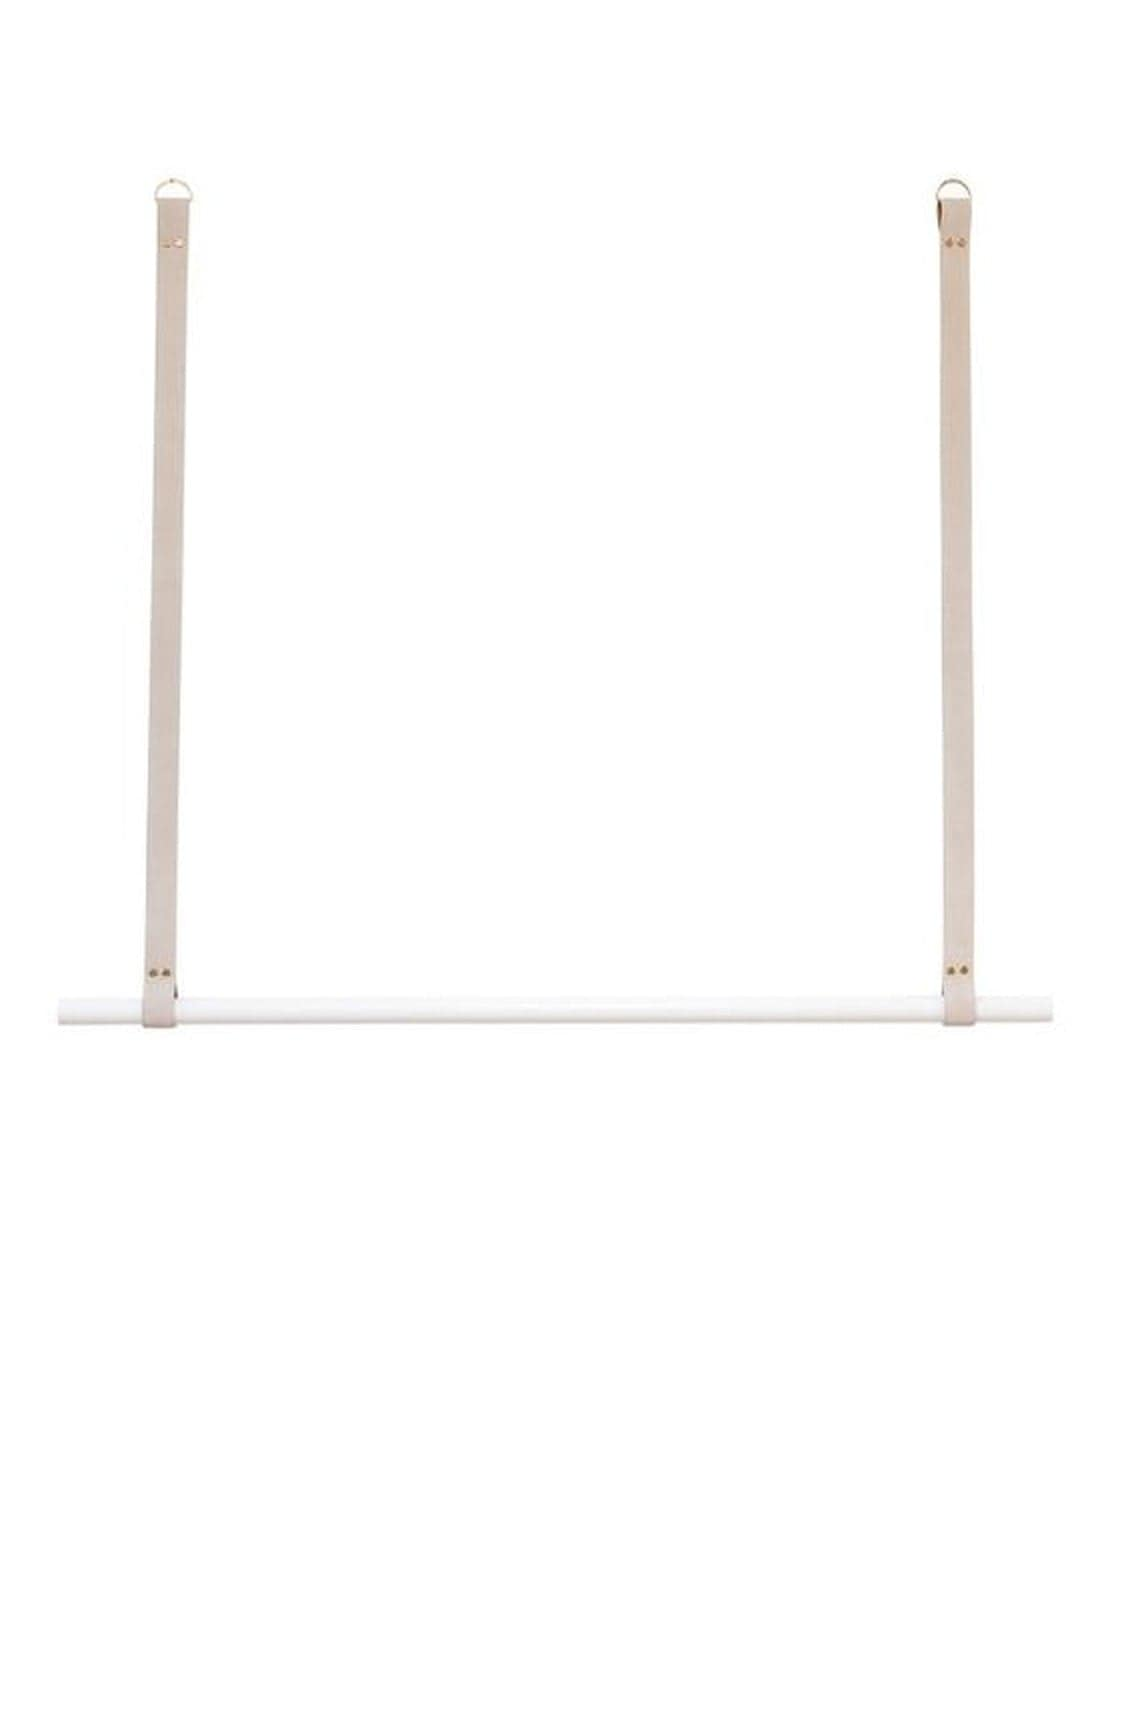 H+G Designs, LEATHER HANGING RAIL, NUDE LEATHER, WHITE - Hello Little Birdie